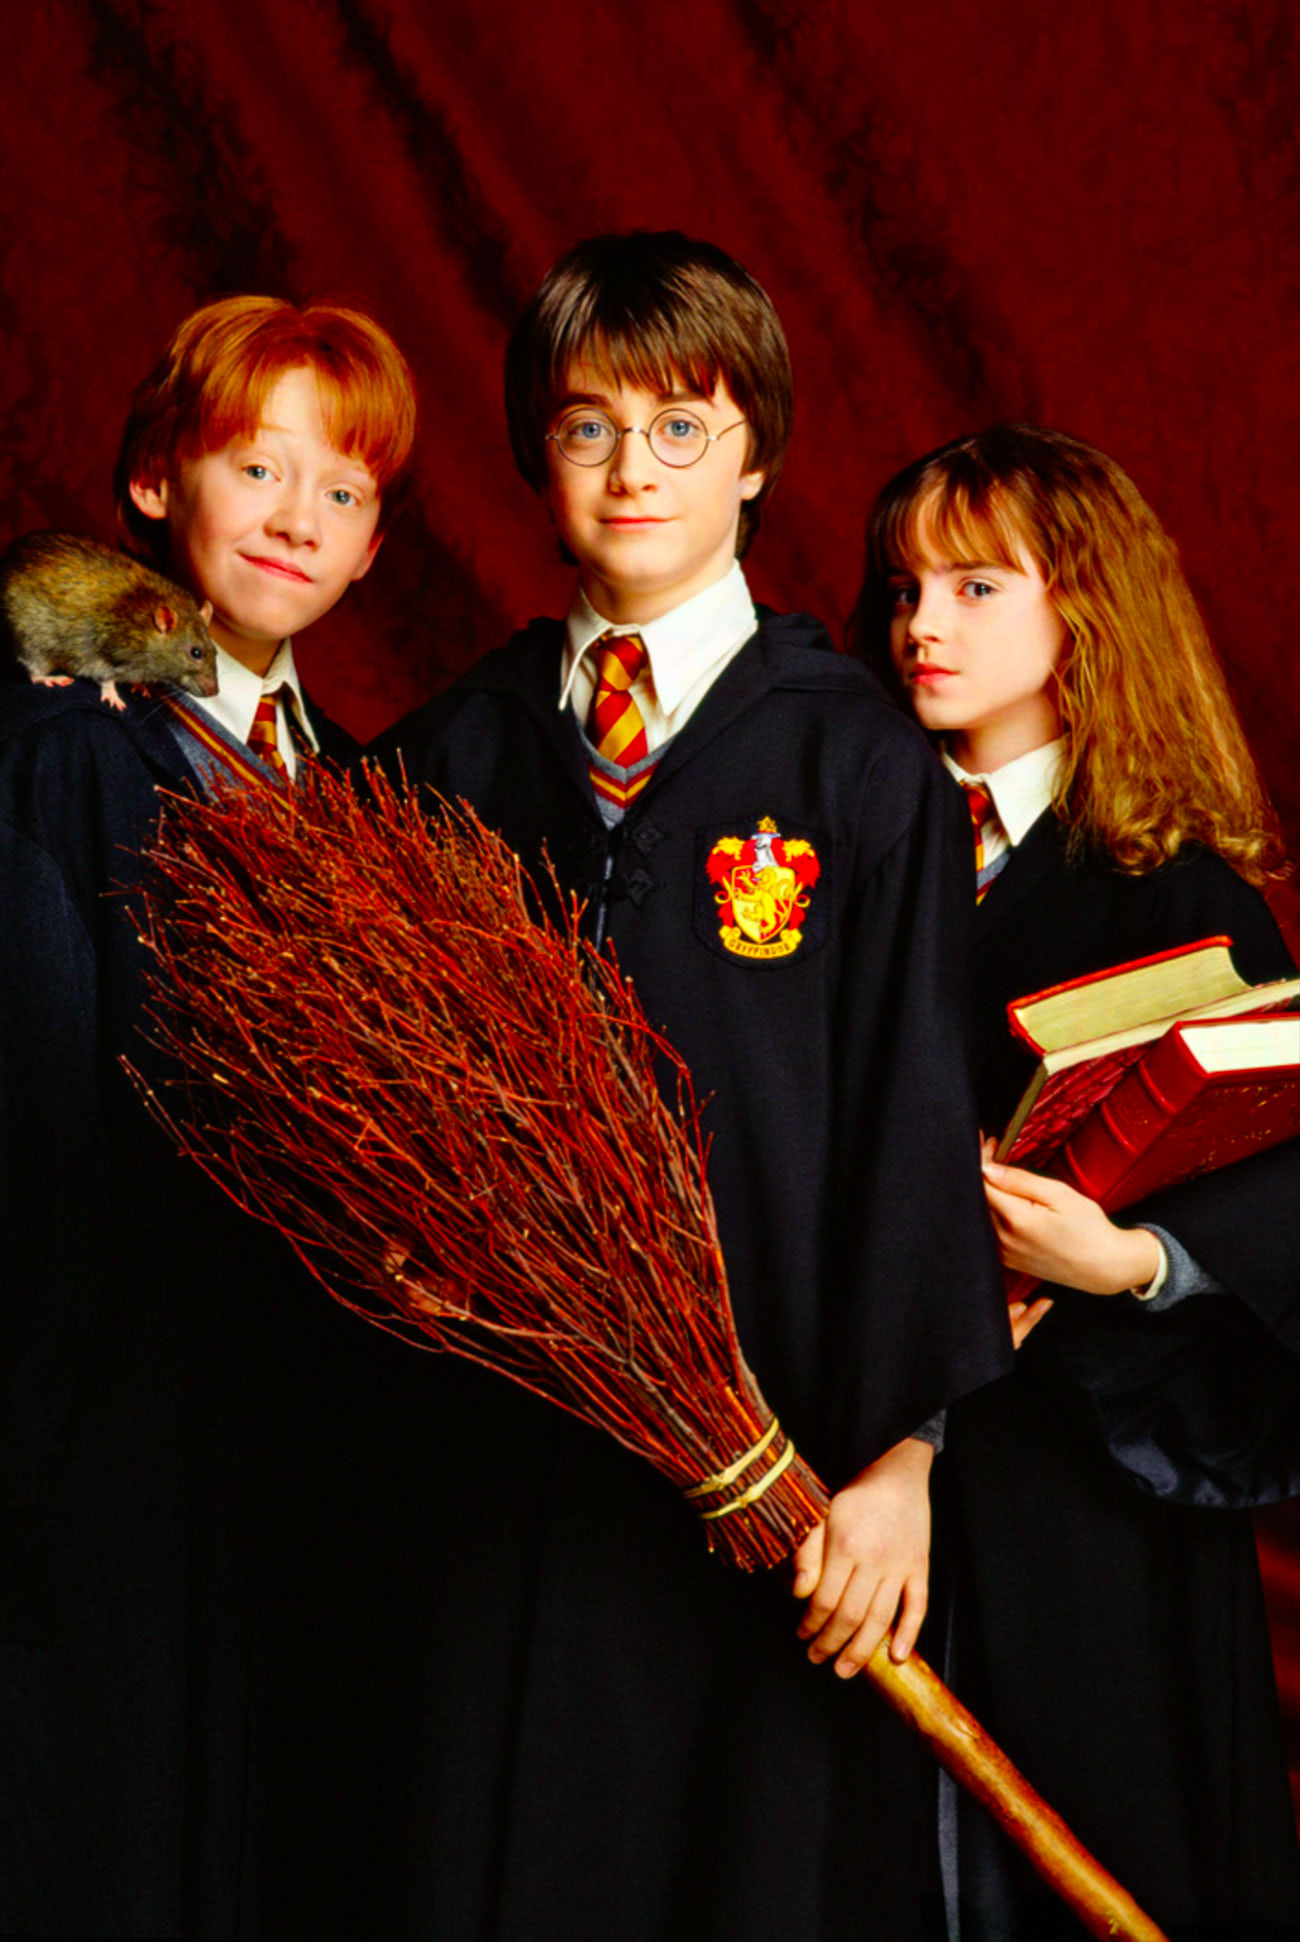 Portrait of Harry, Ron and Hermione